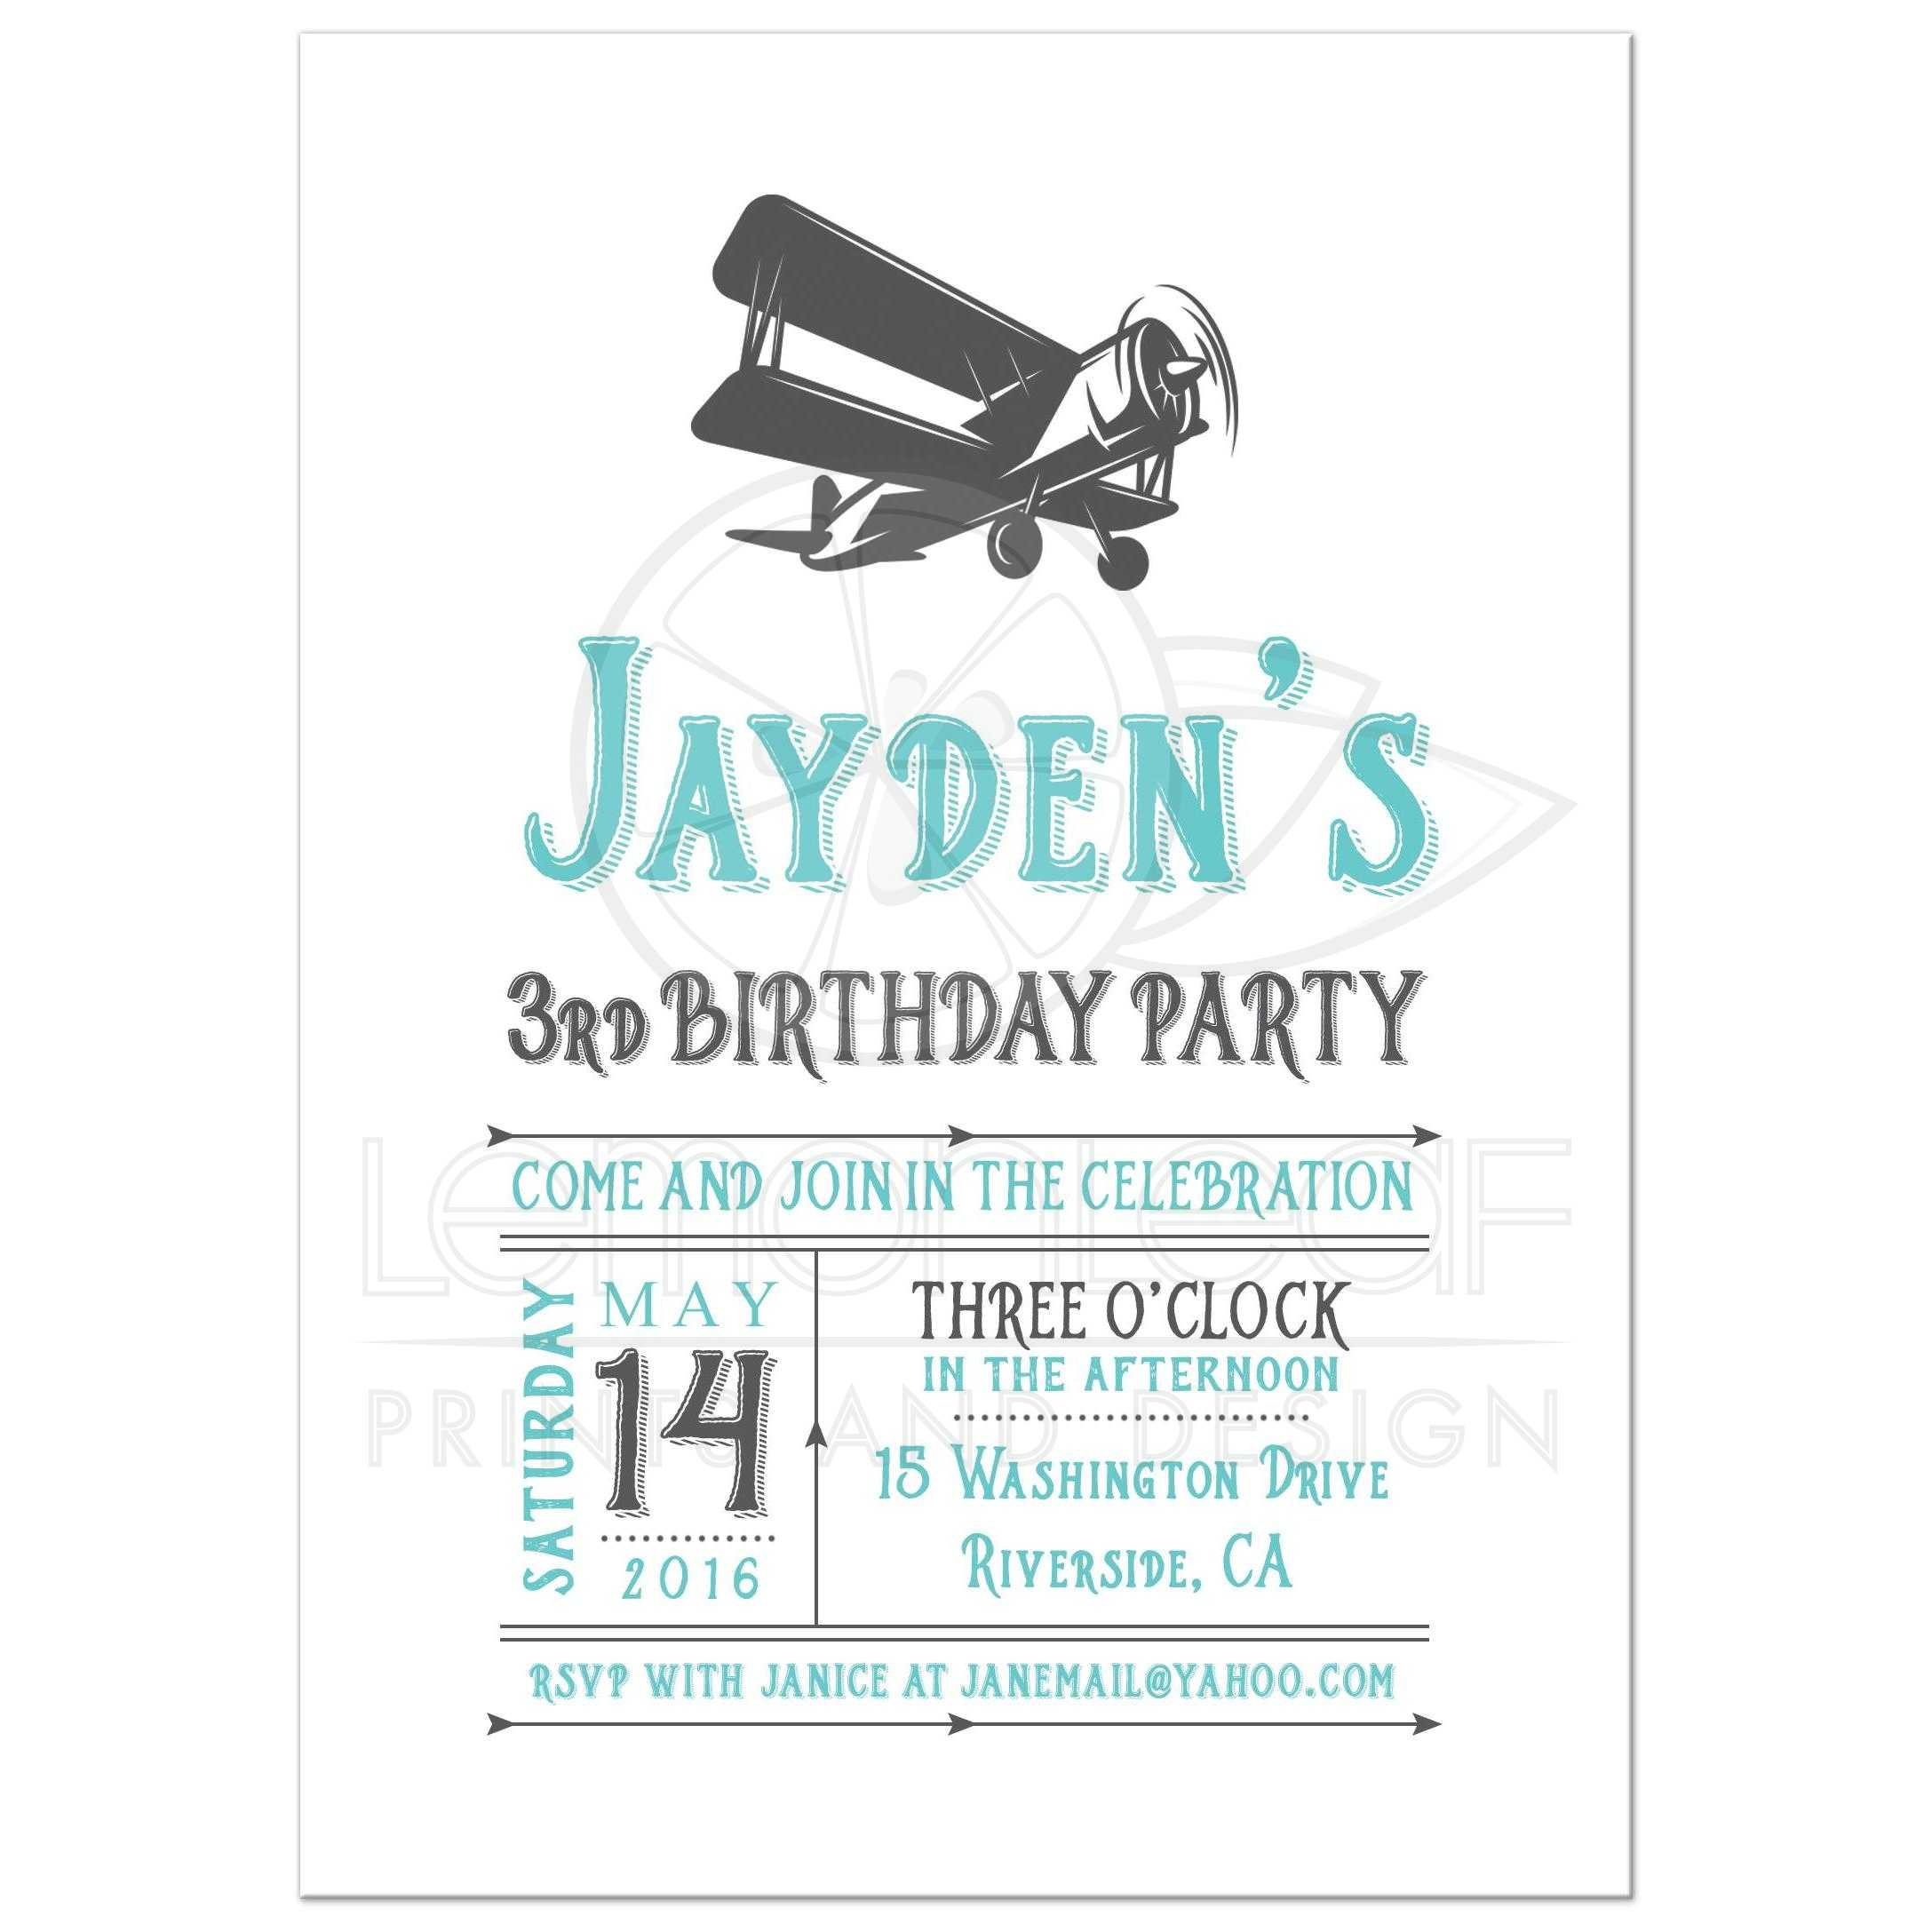 Vintage Airplane Birthday Party Invitation - Teal Blue and Gray